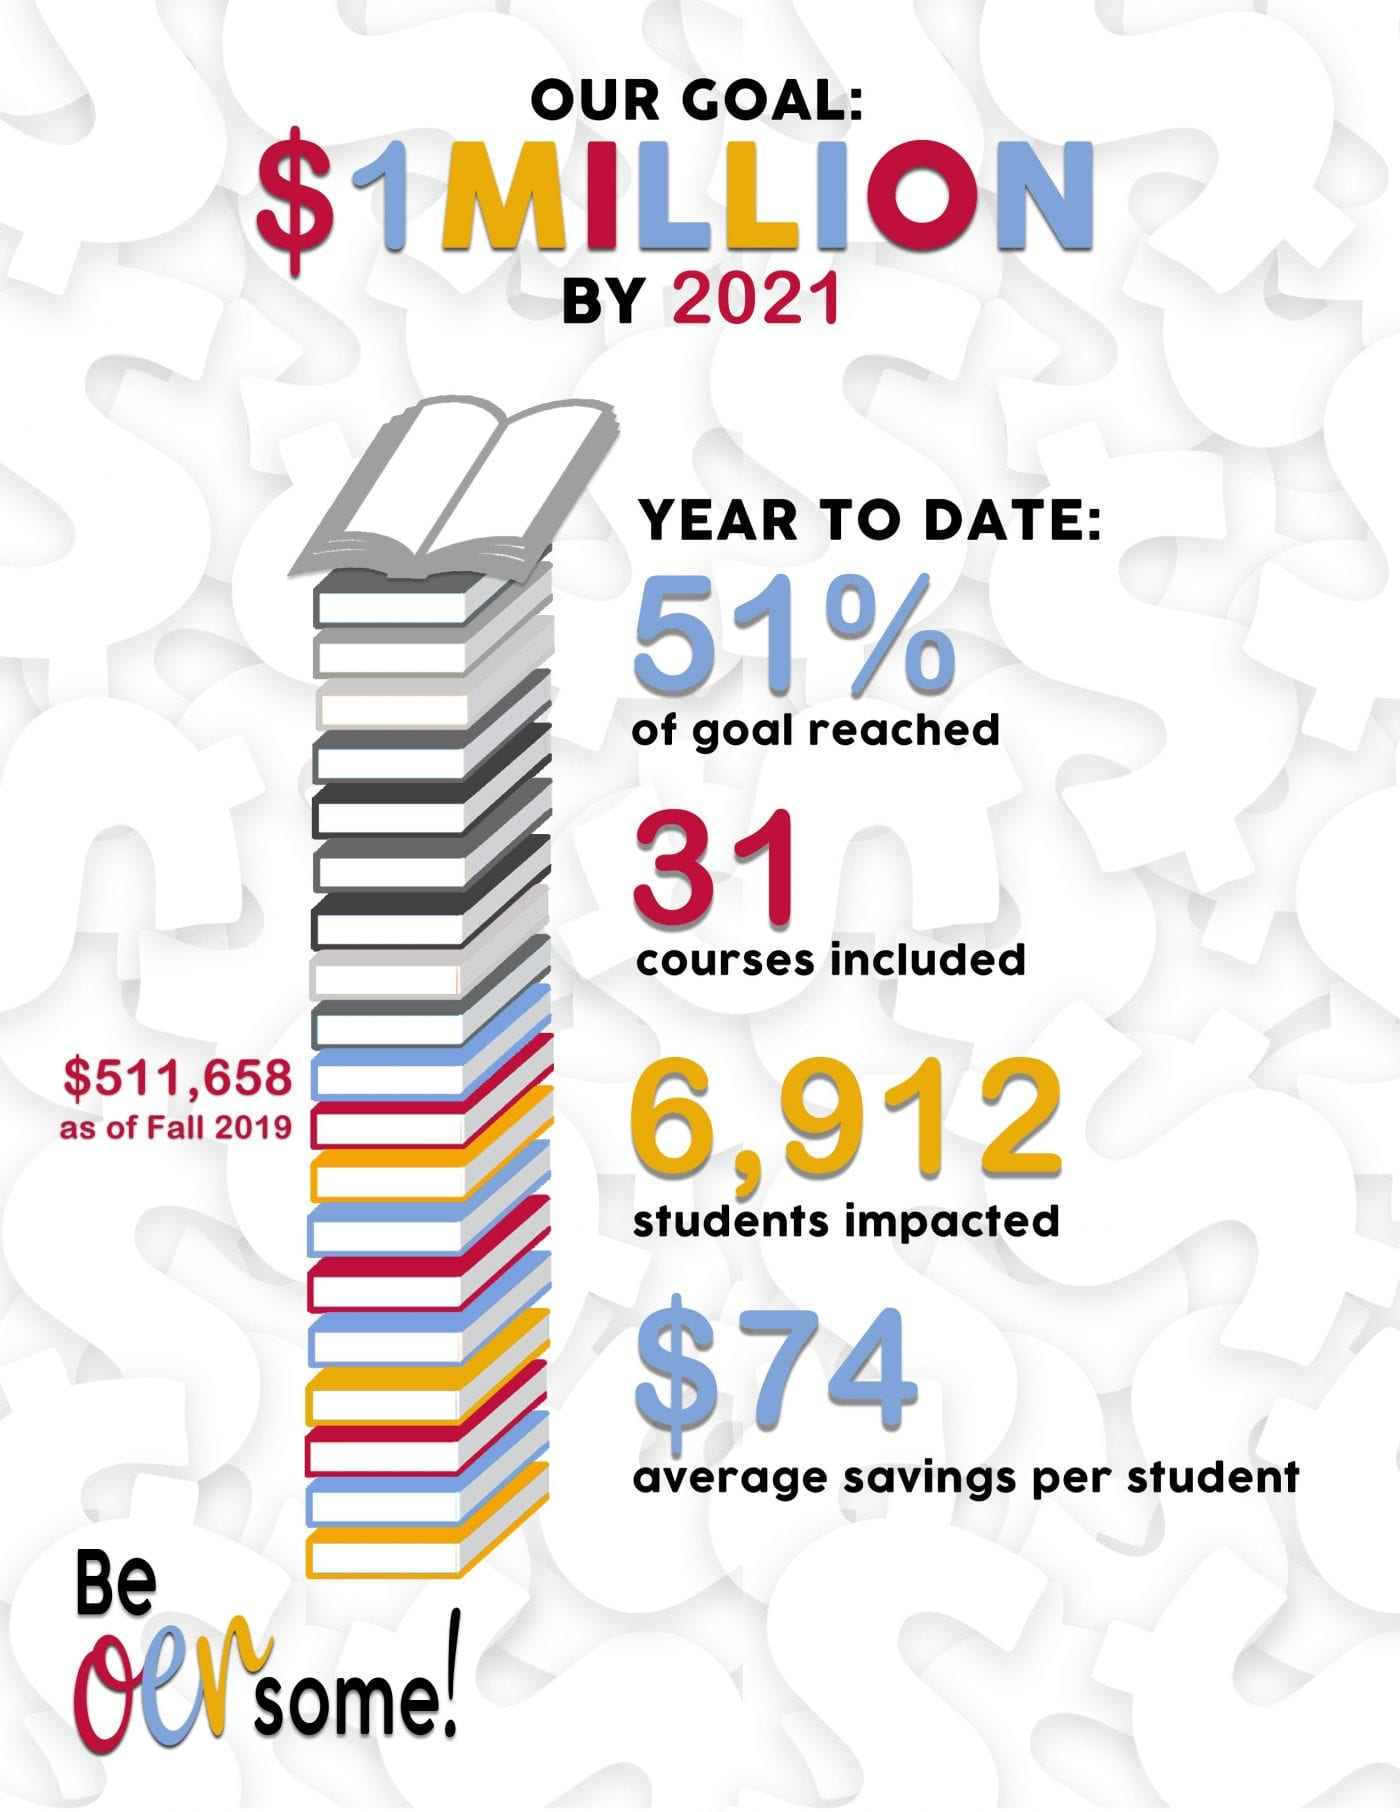 poster displaying total savings from OER as of fall 2019, $511,,658.00